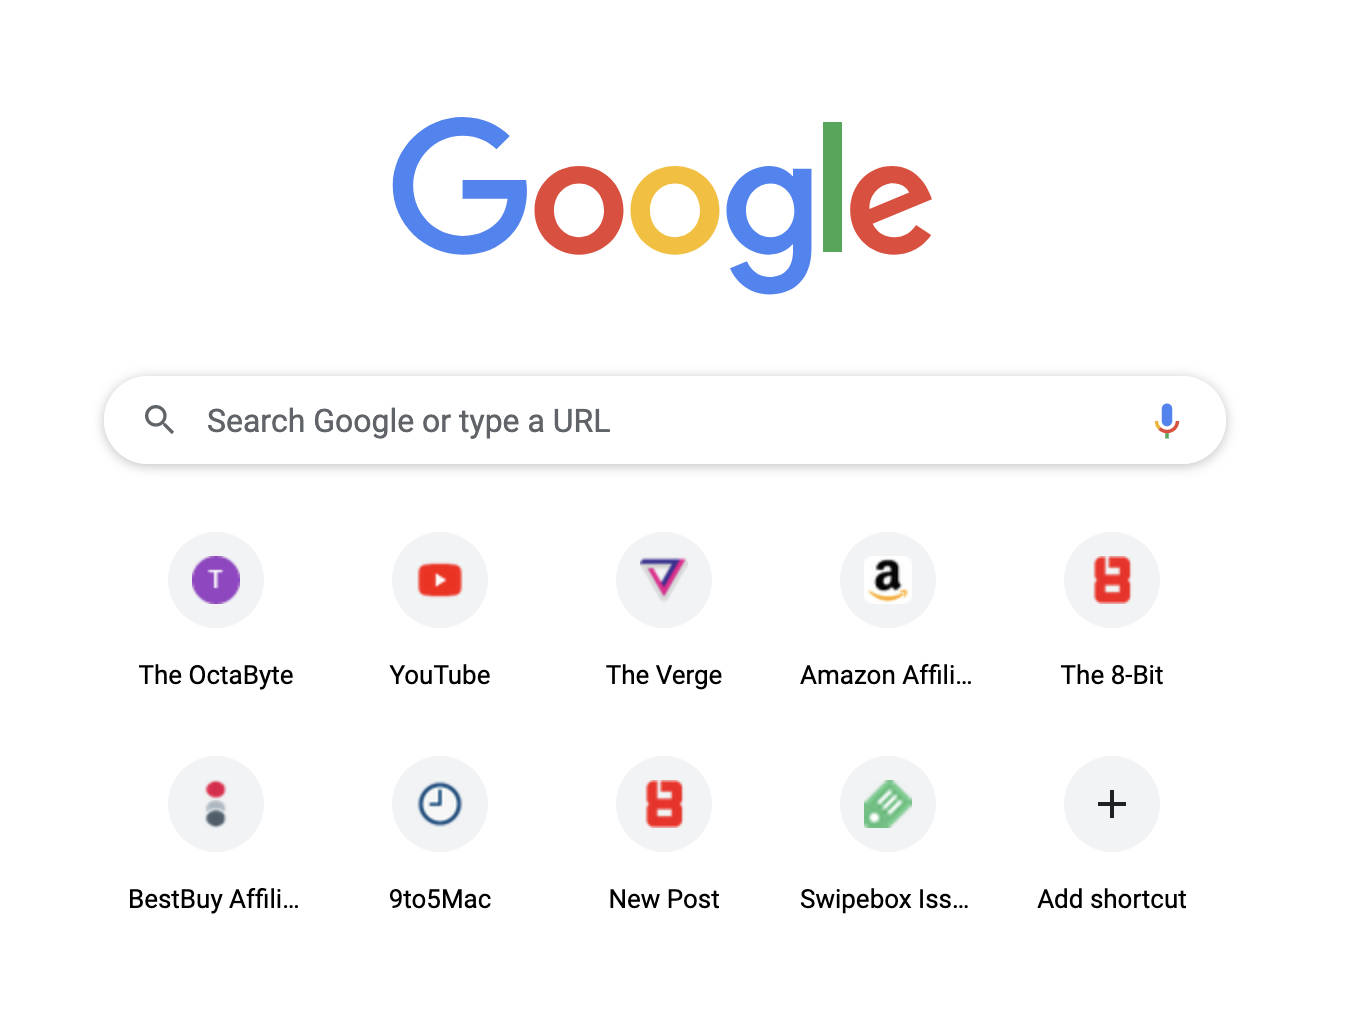 Chrome's Homepage elements including the colossal Google logo, the Omnibox, and frequently visited website thumbnails.